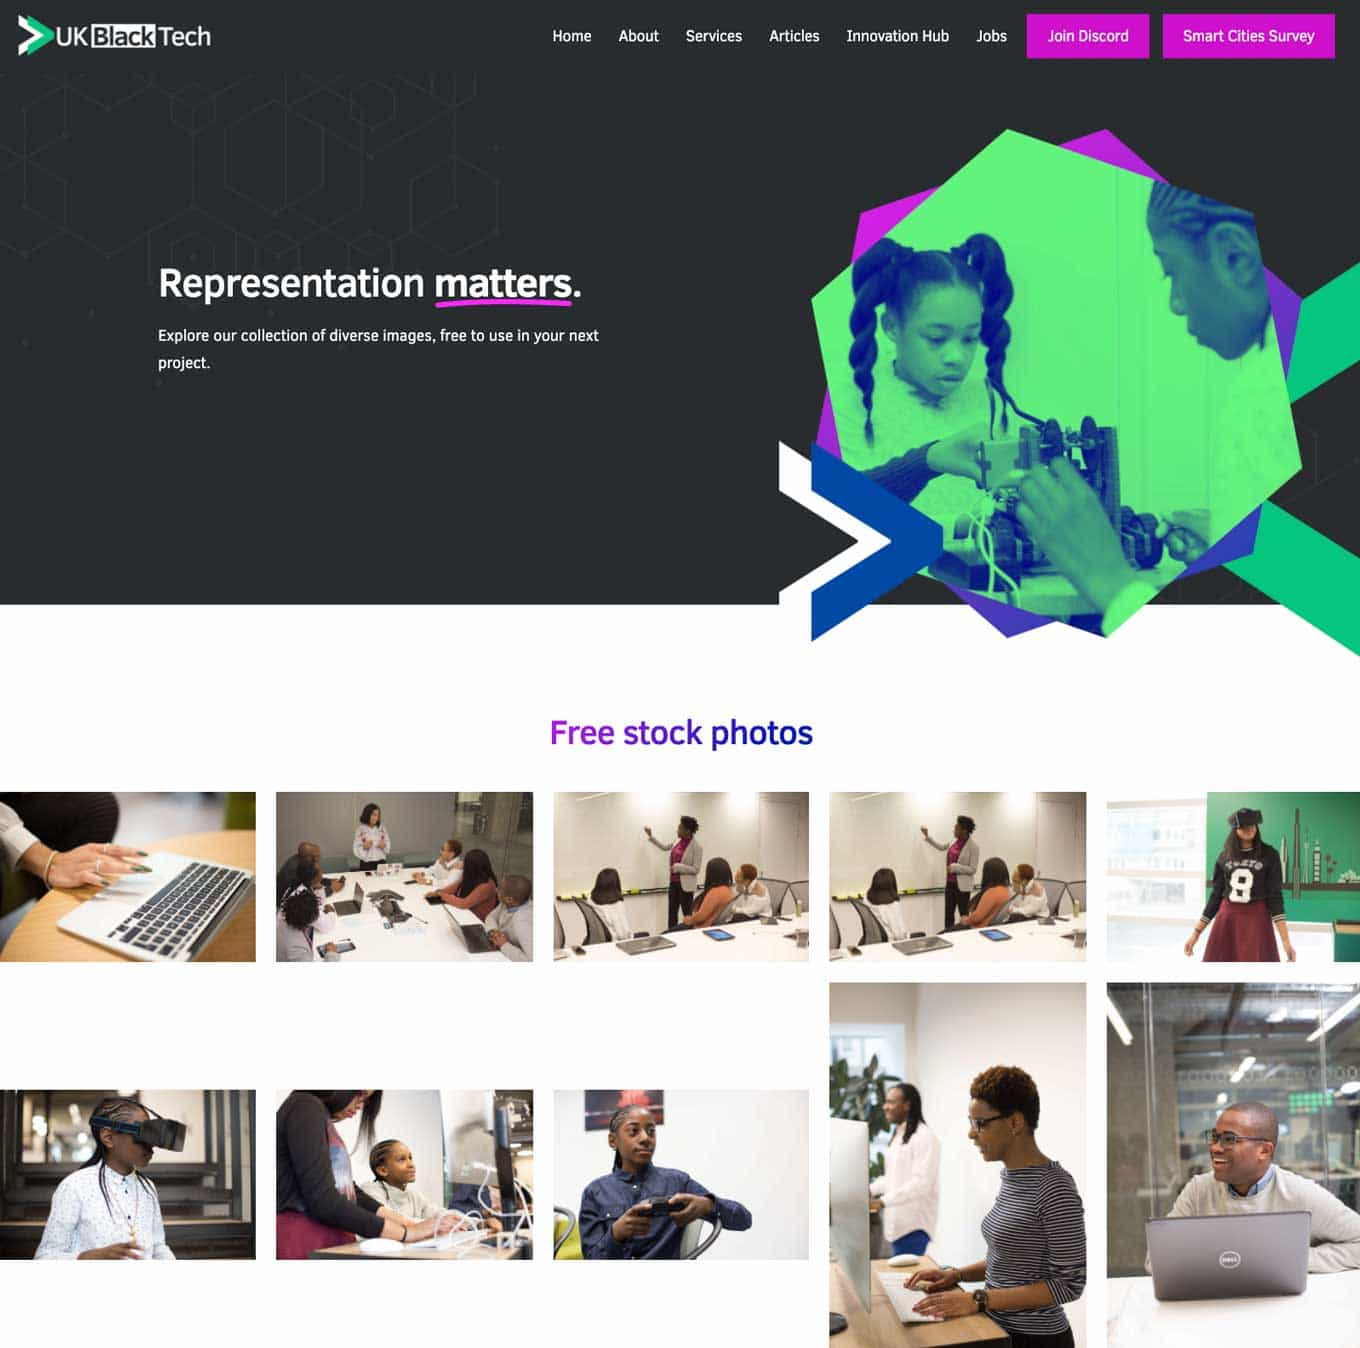 UK Black Tech Stock Photography - Representation Matters - Explore our collection of diverse images, free to use in your next project - Free stock photos